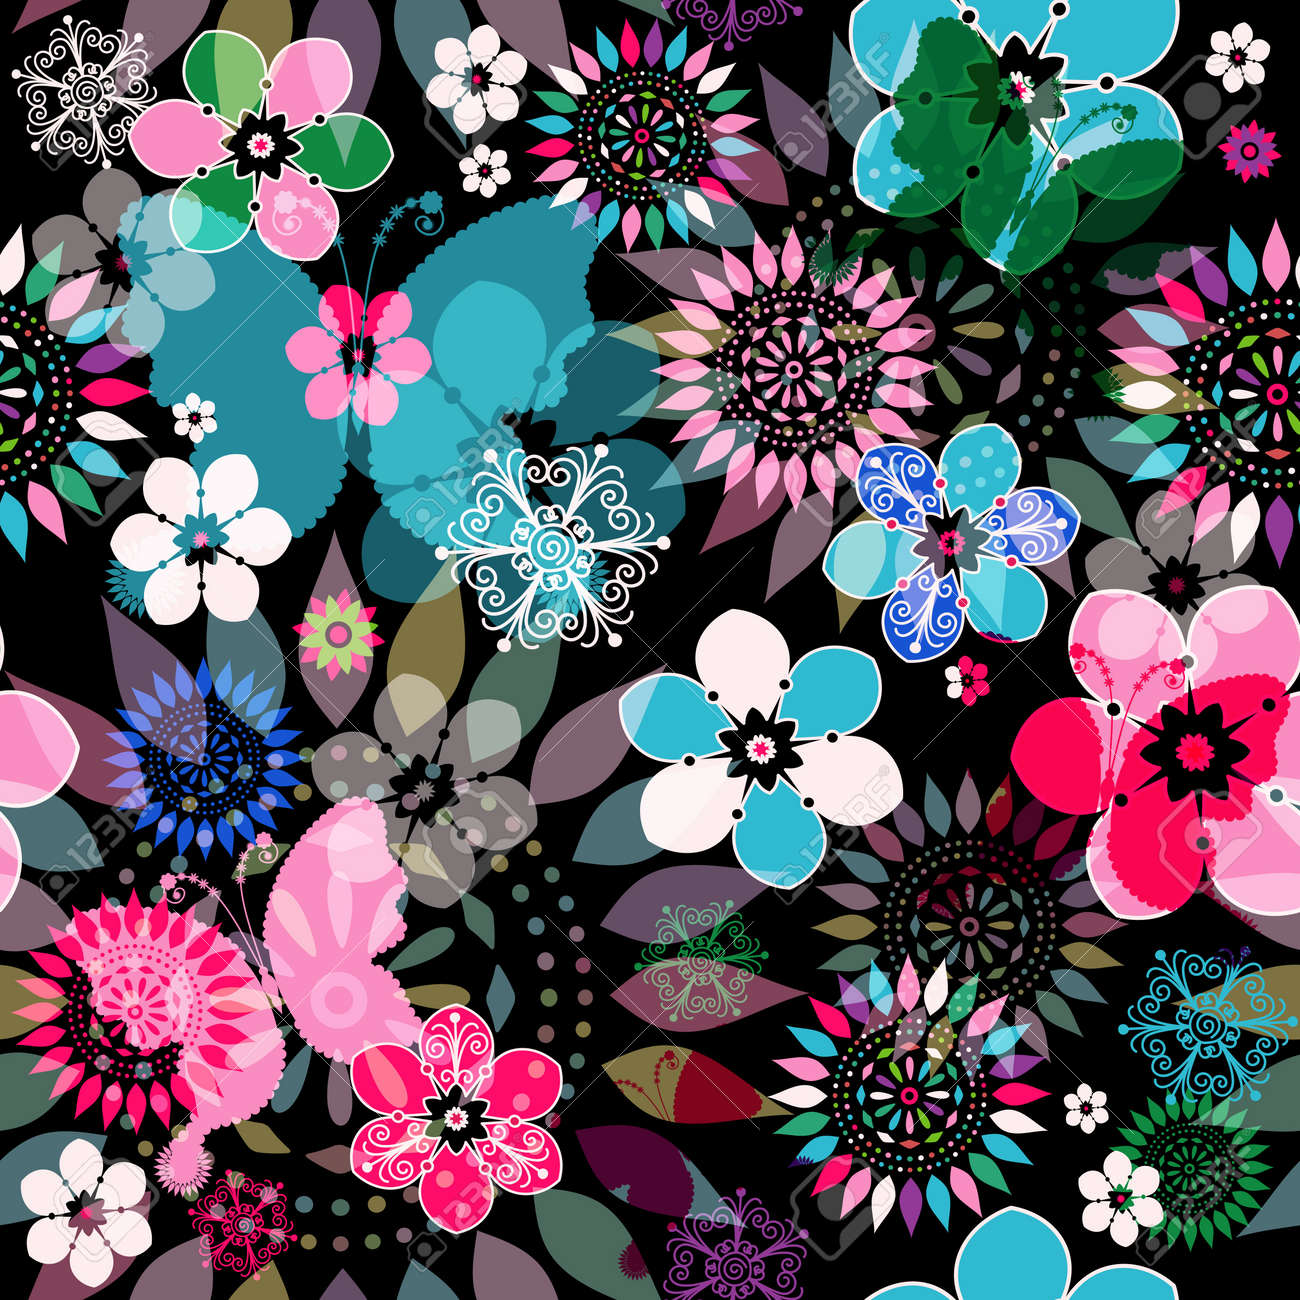 Seamless dark floral pattern with colorful flowers,  translucent butterflies and decorative circles Stock Vector - 21960978